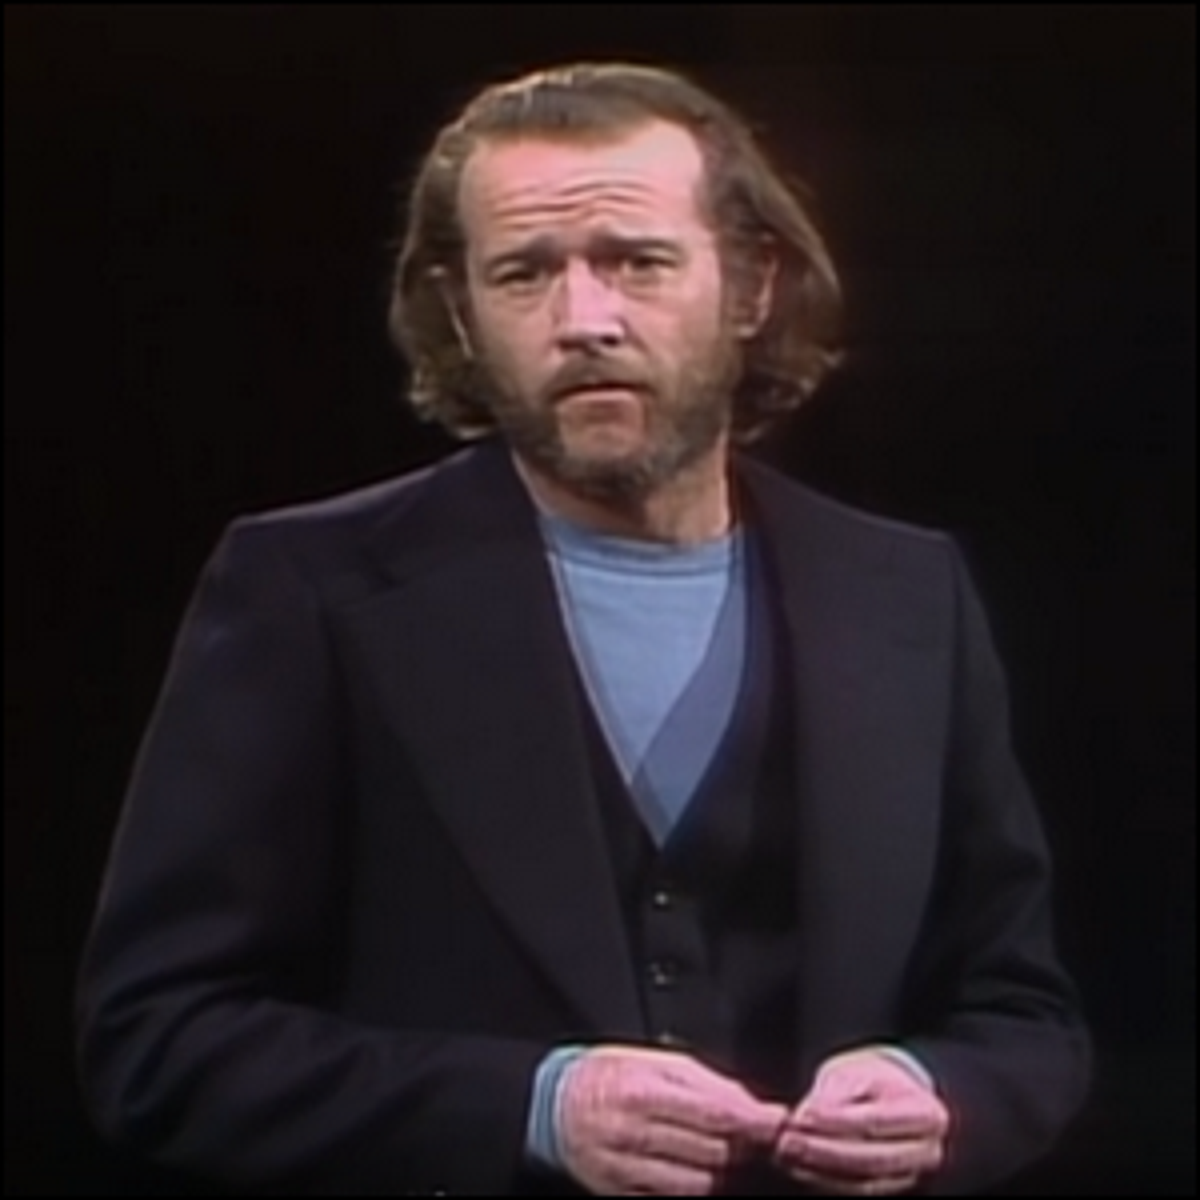 George Carlin on stage during the very first broadcast of Saturday Night Live.